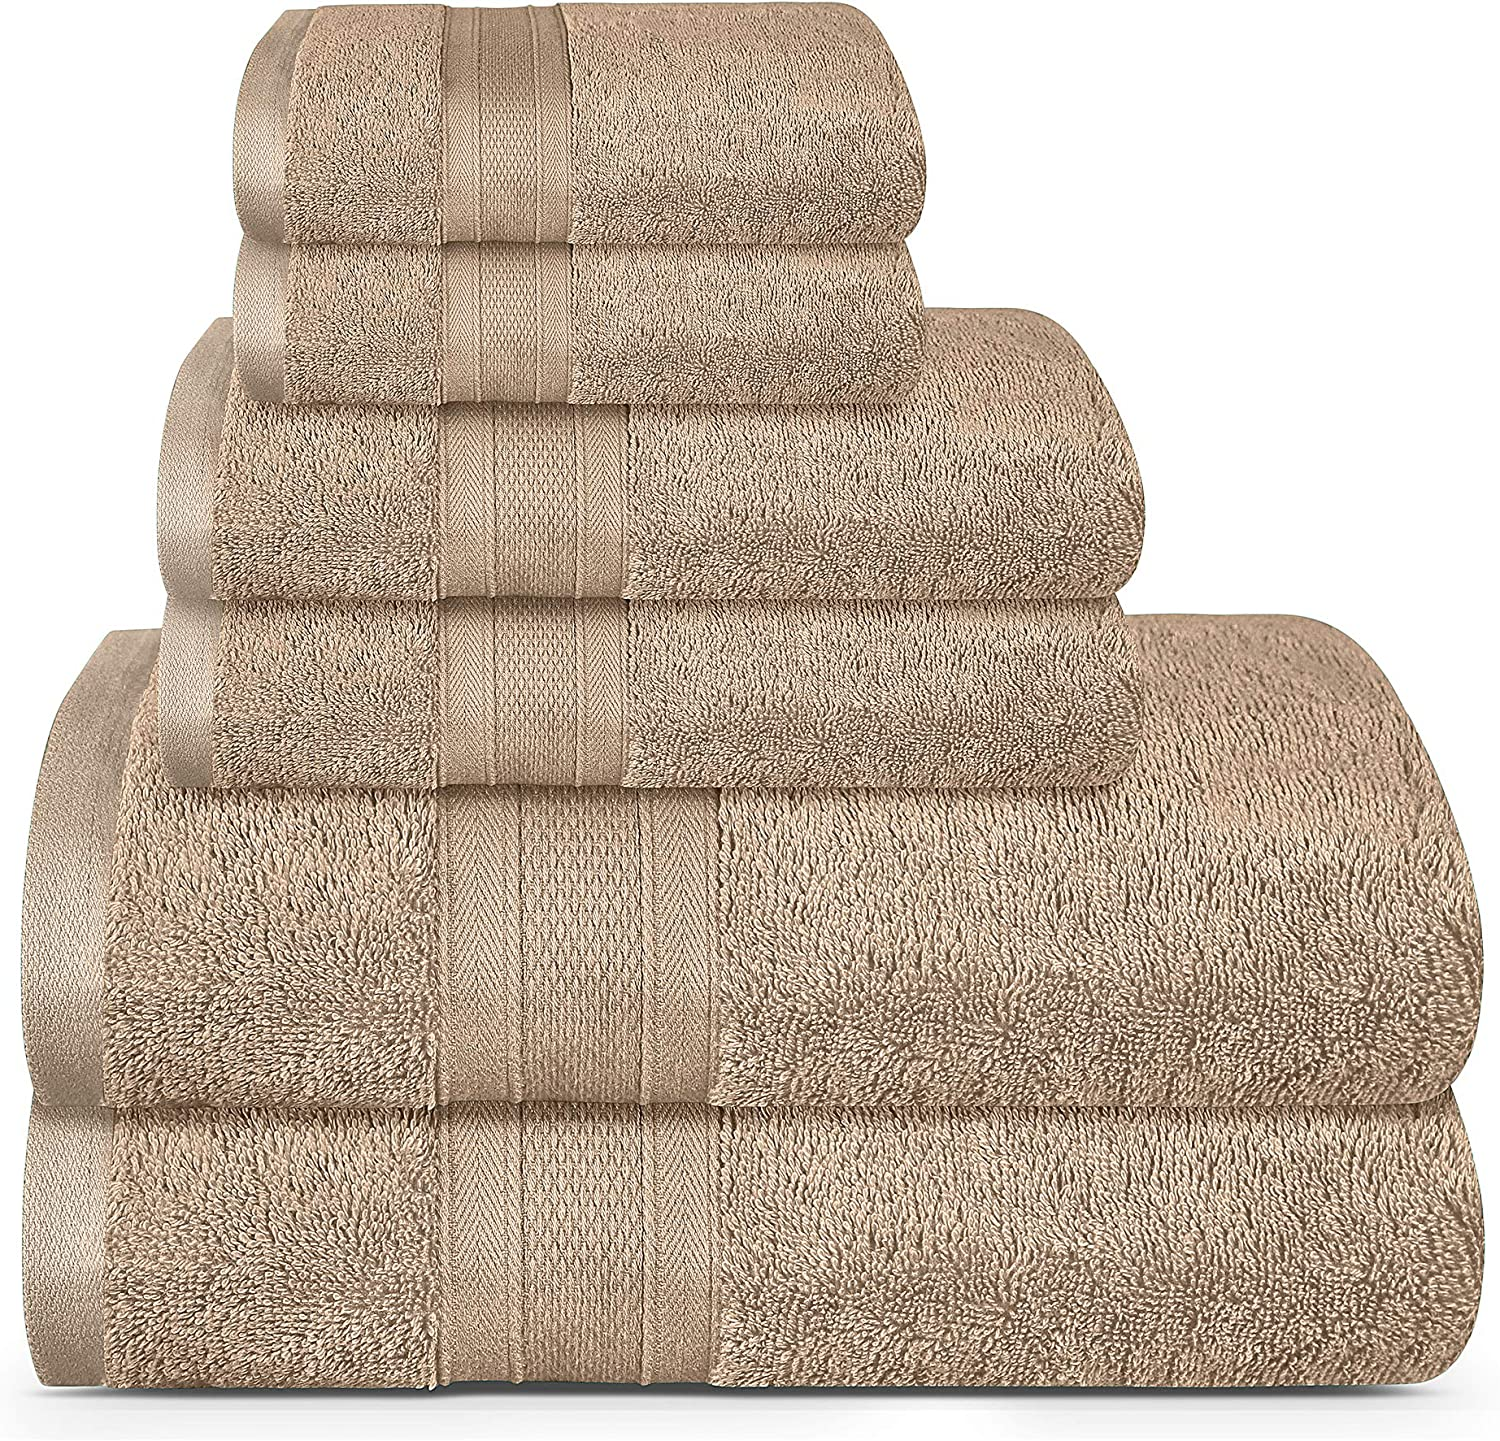 TRIDENT Soft and Plush, 100% Cotton, Highly Absorbent, Bathroom Towels, Super Soft, 6 Piece Towel Set (2 Bath Towels, 2 Hand Towels, 2 Washcloths), 500 GSM, Acorn